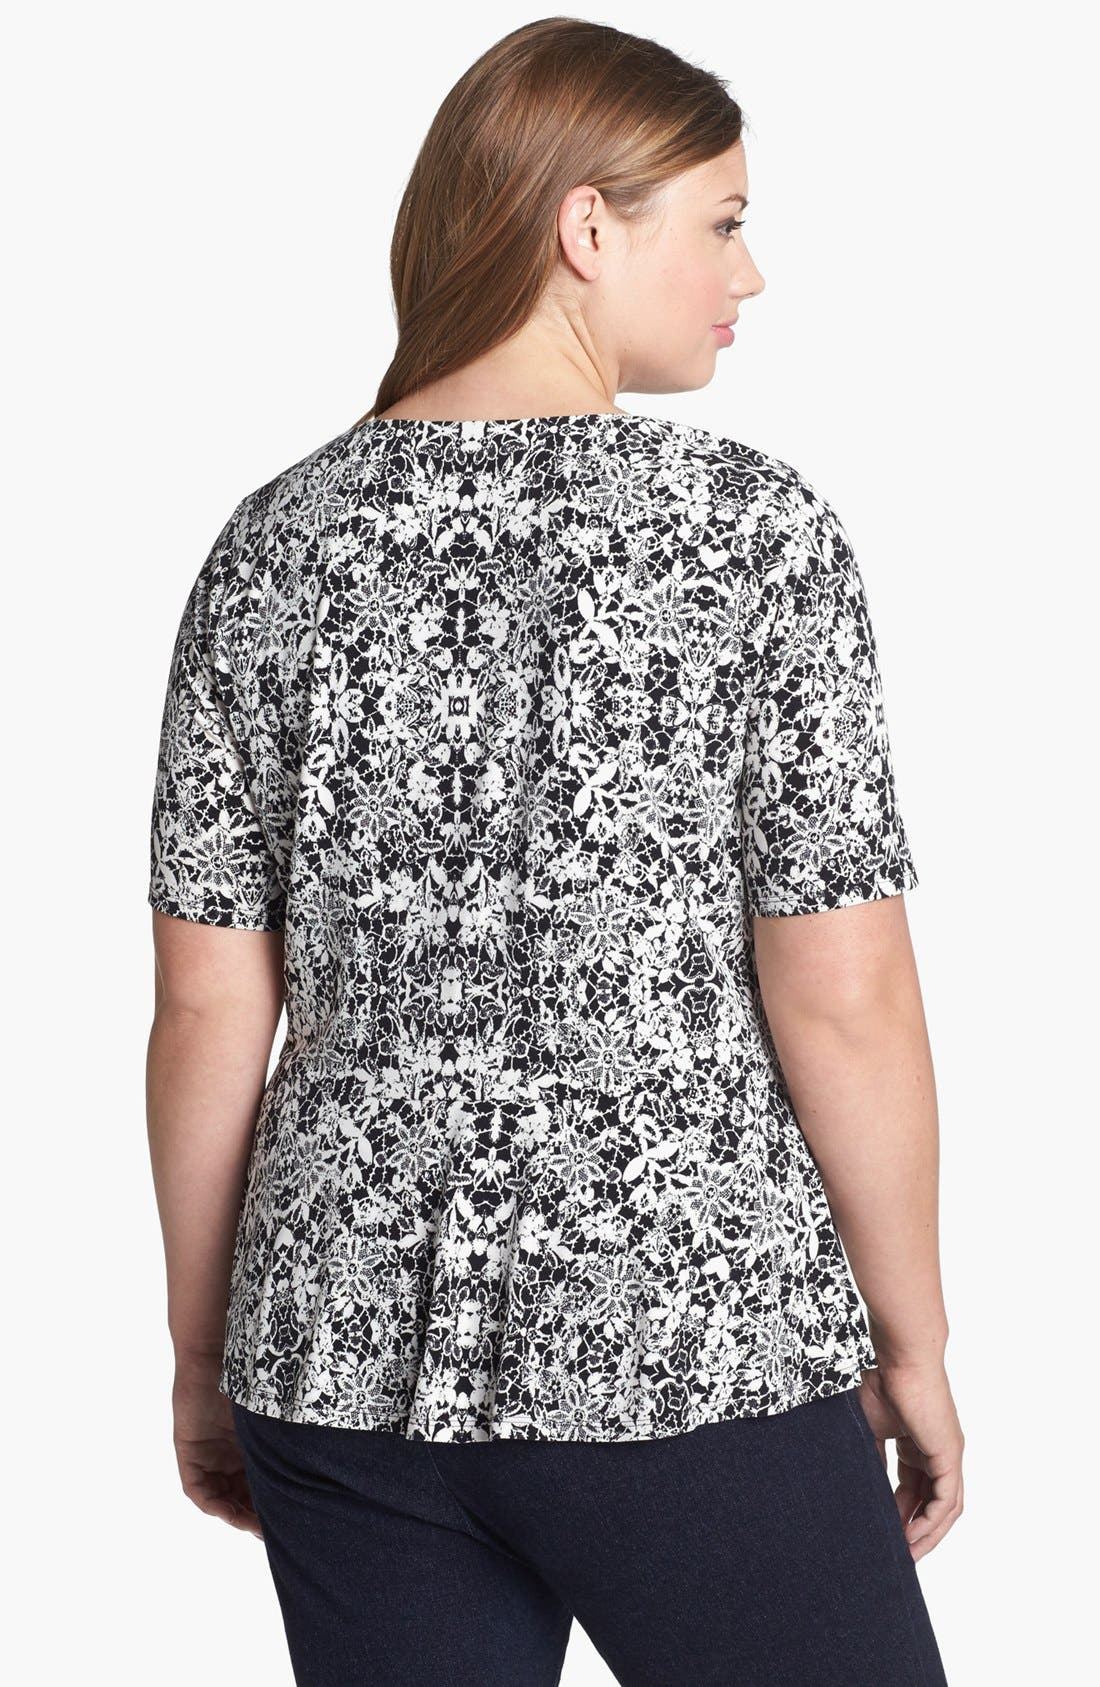 Alternate Image 2  - Vince Camuto Lace Print Peplum Top (Plus Size)